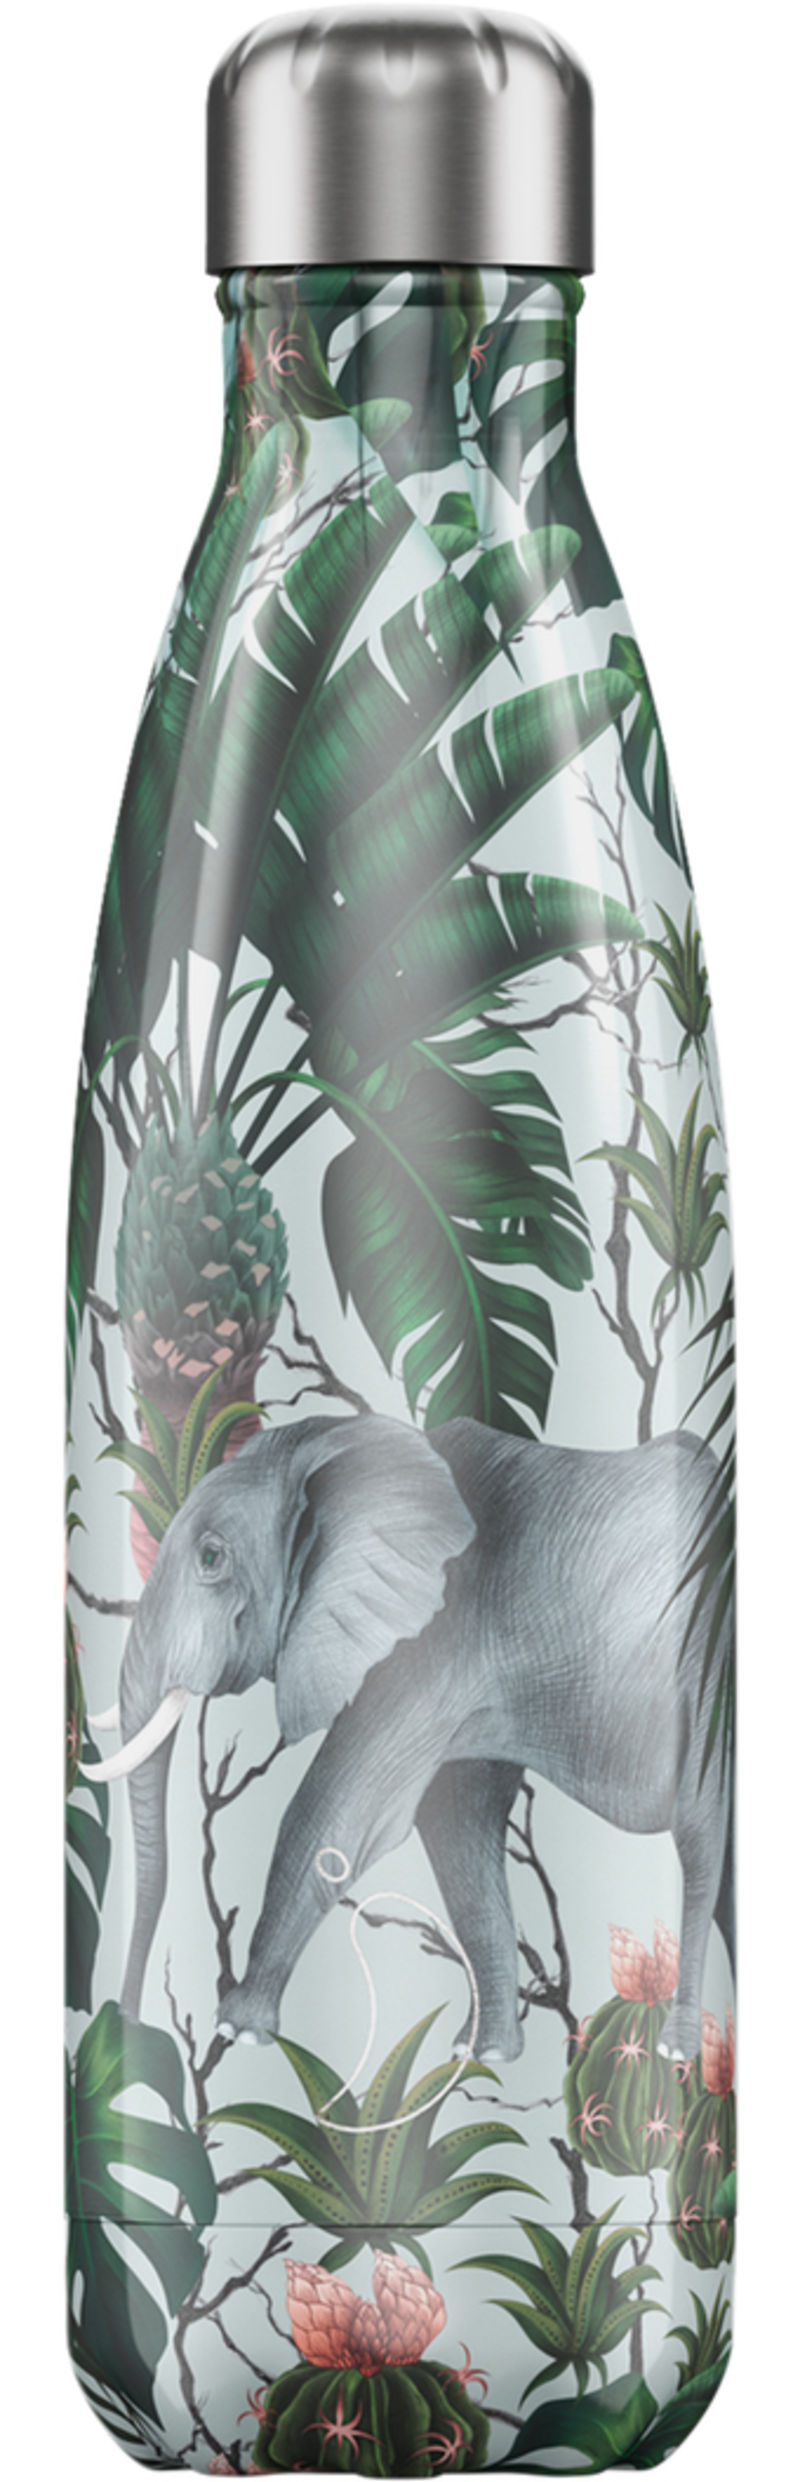 BOTELLA INOX TROPICAL ELEFANTE 500ML